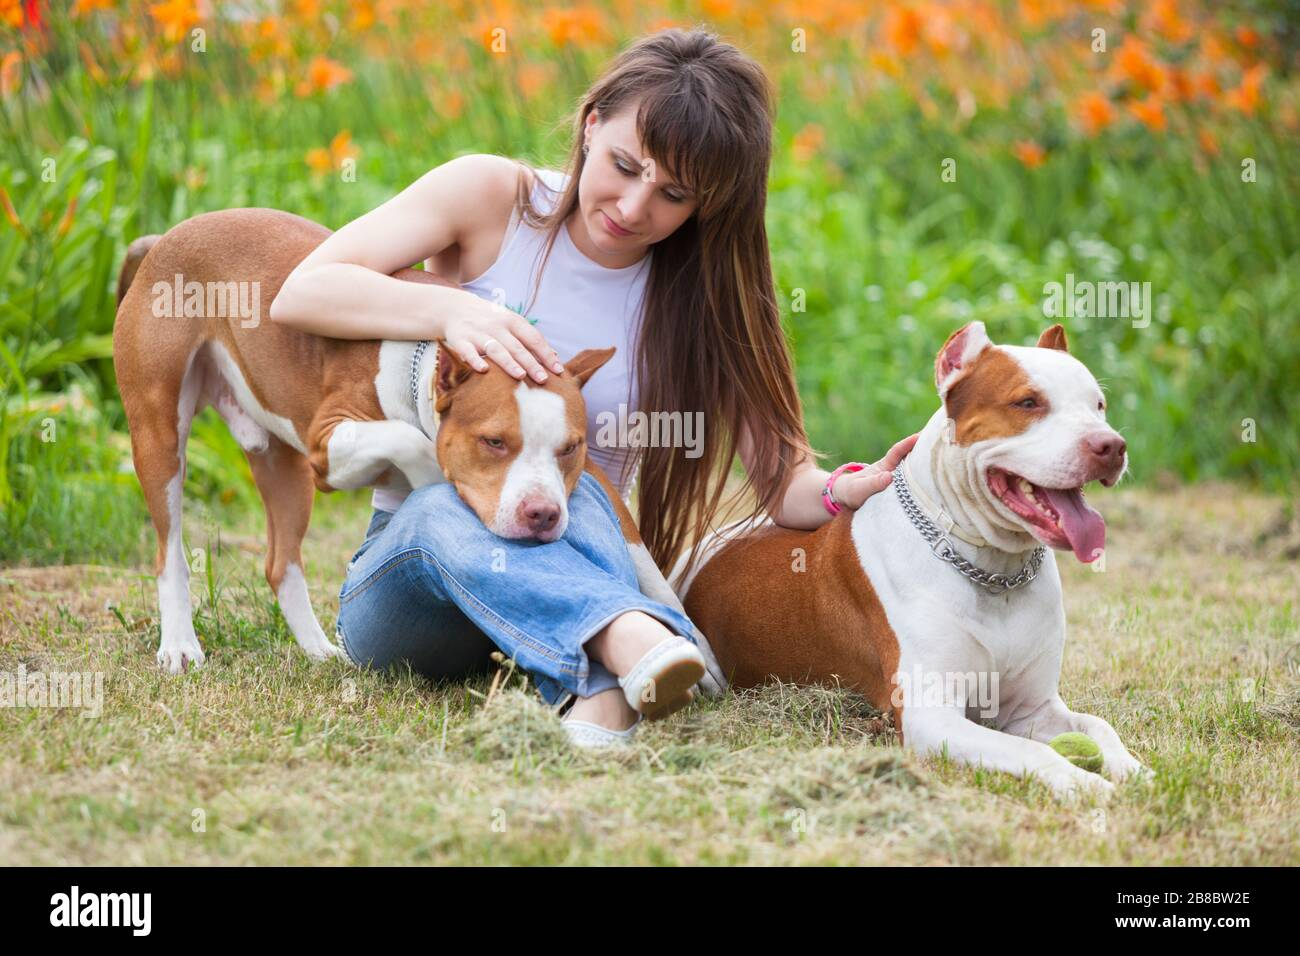 """Poster 19/"""" x 13/"""" Pit Bull Terrier Run Protruding Tongue"""